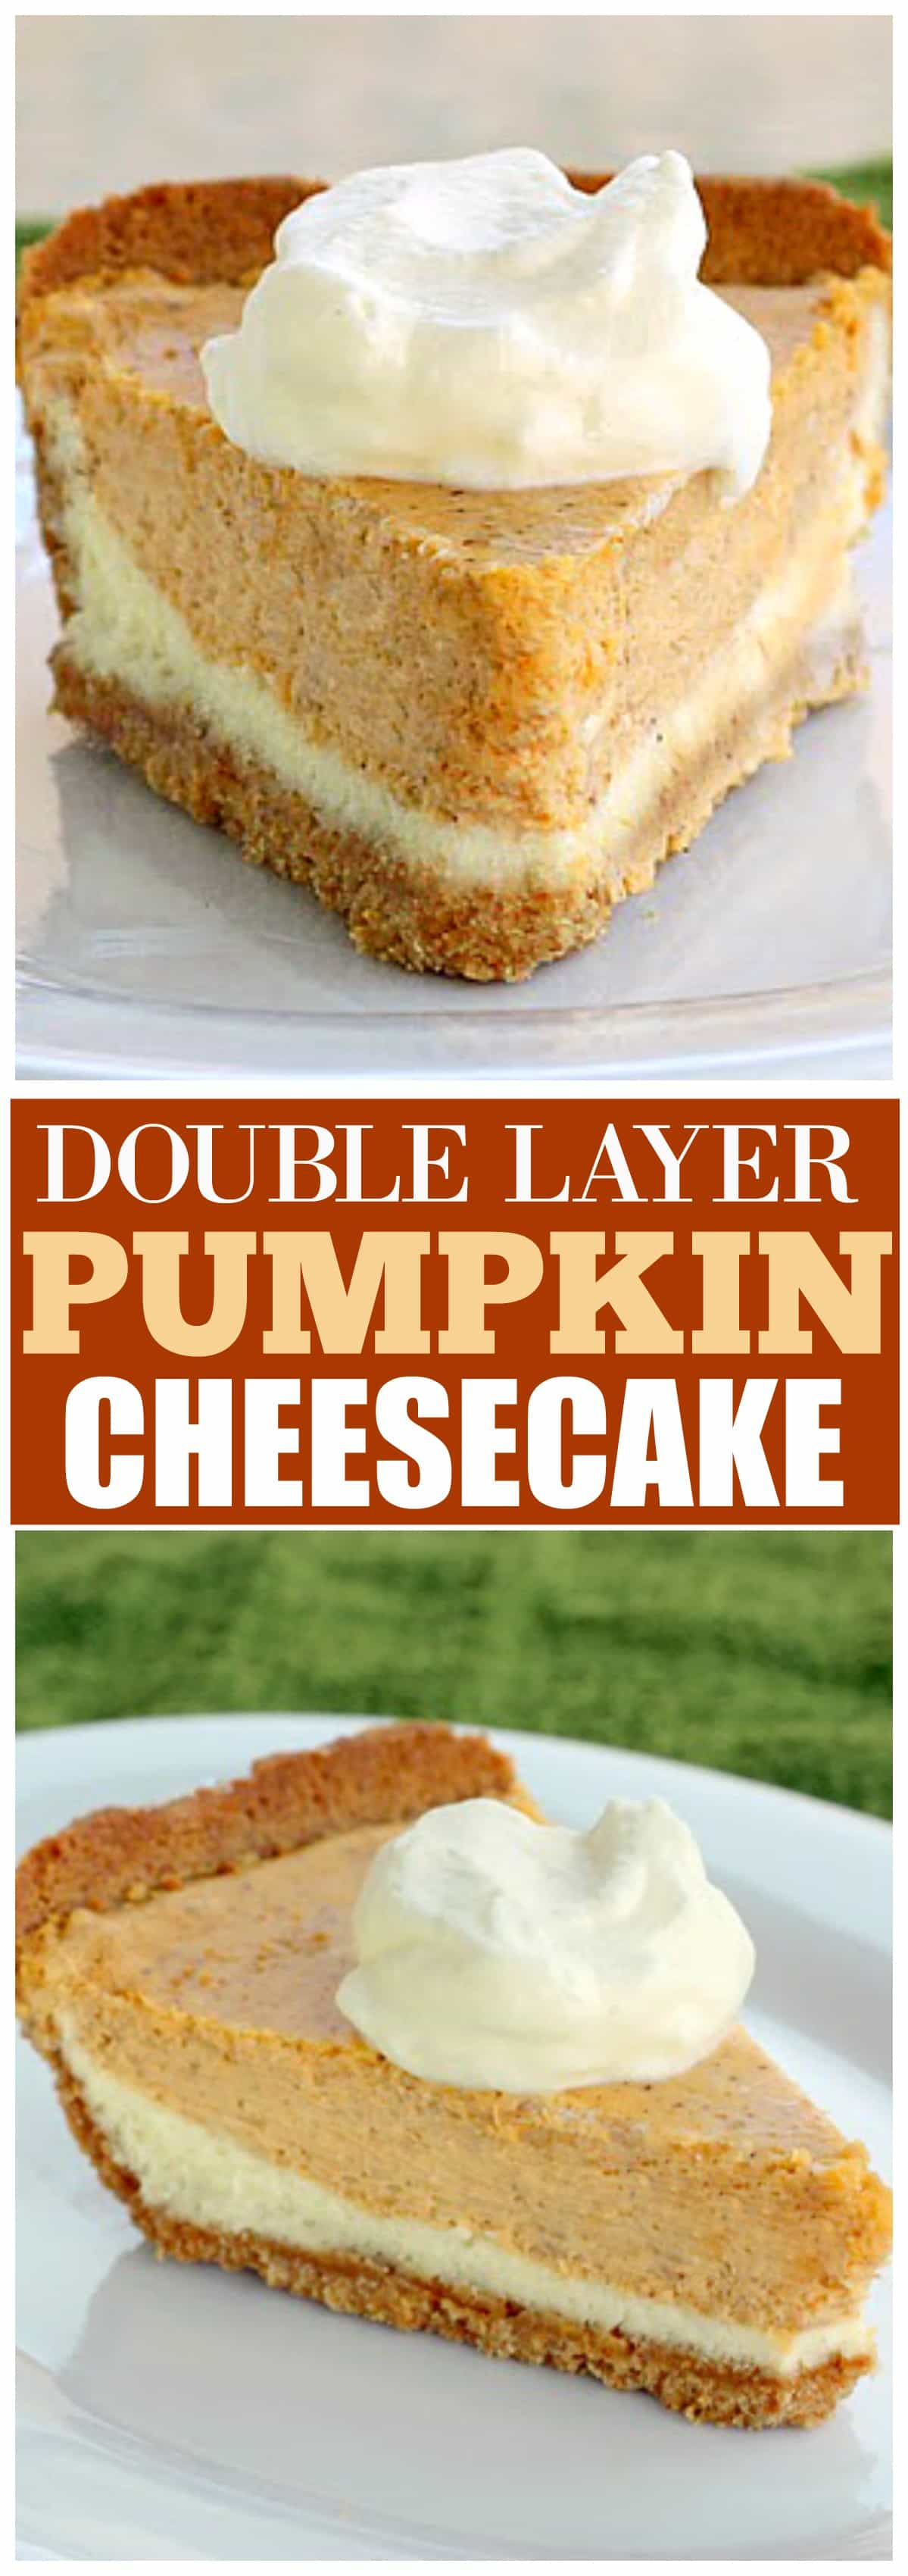 Double Layer Pumpkin Cheesecake - a layer of cheesecake topped with a layer of pumpkin cheesecake in a graham cracker crust. #pumpkin #cheesecake #dessert #fall #recipe